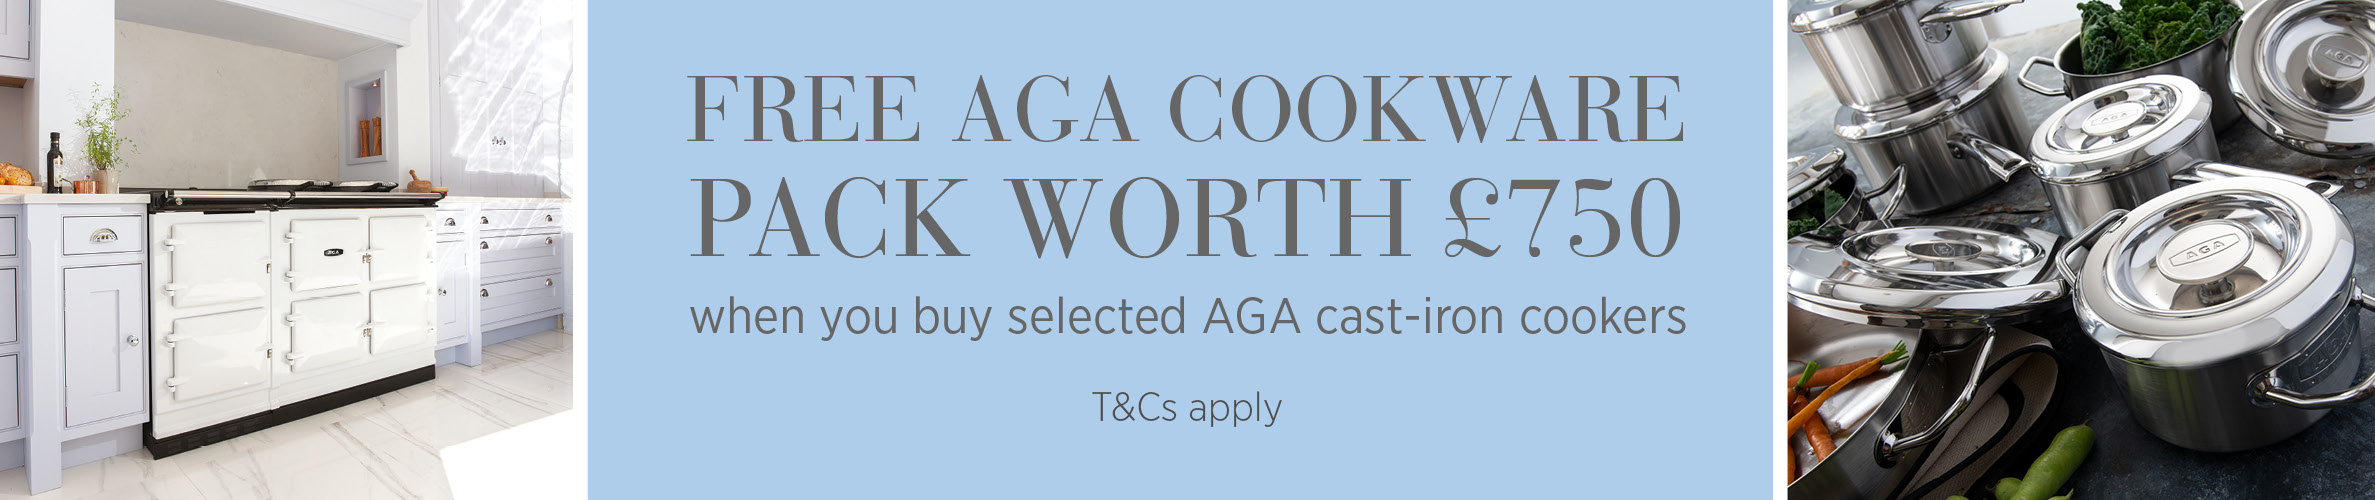 Buy selected AGA models and receive £750 AGA Cookware promotion